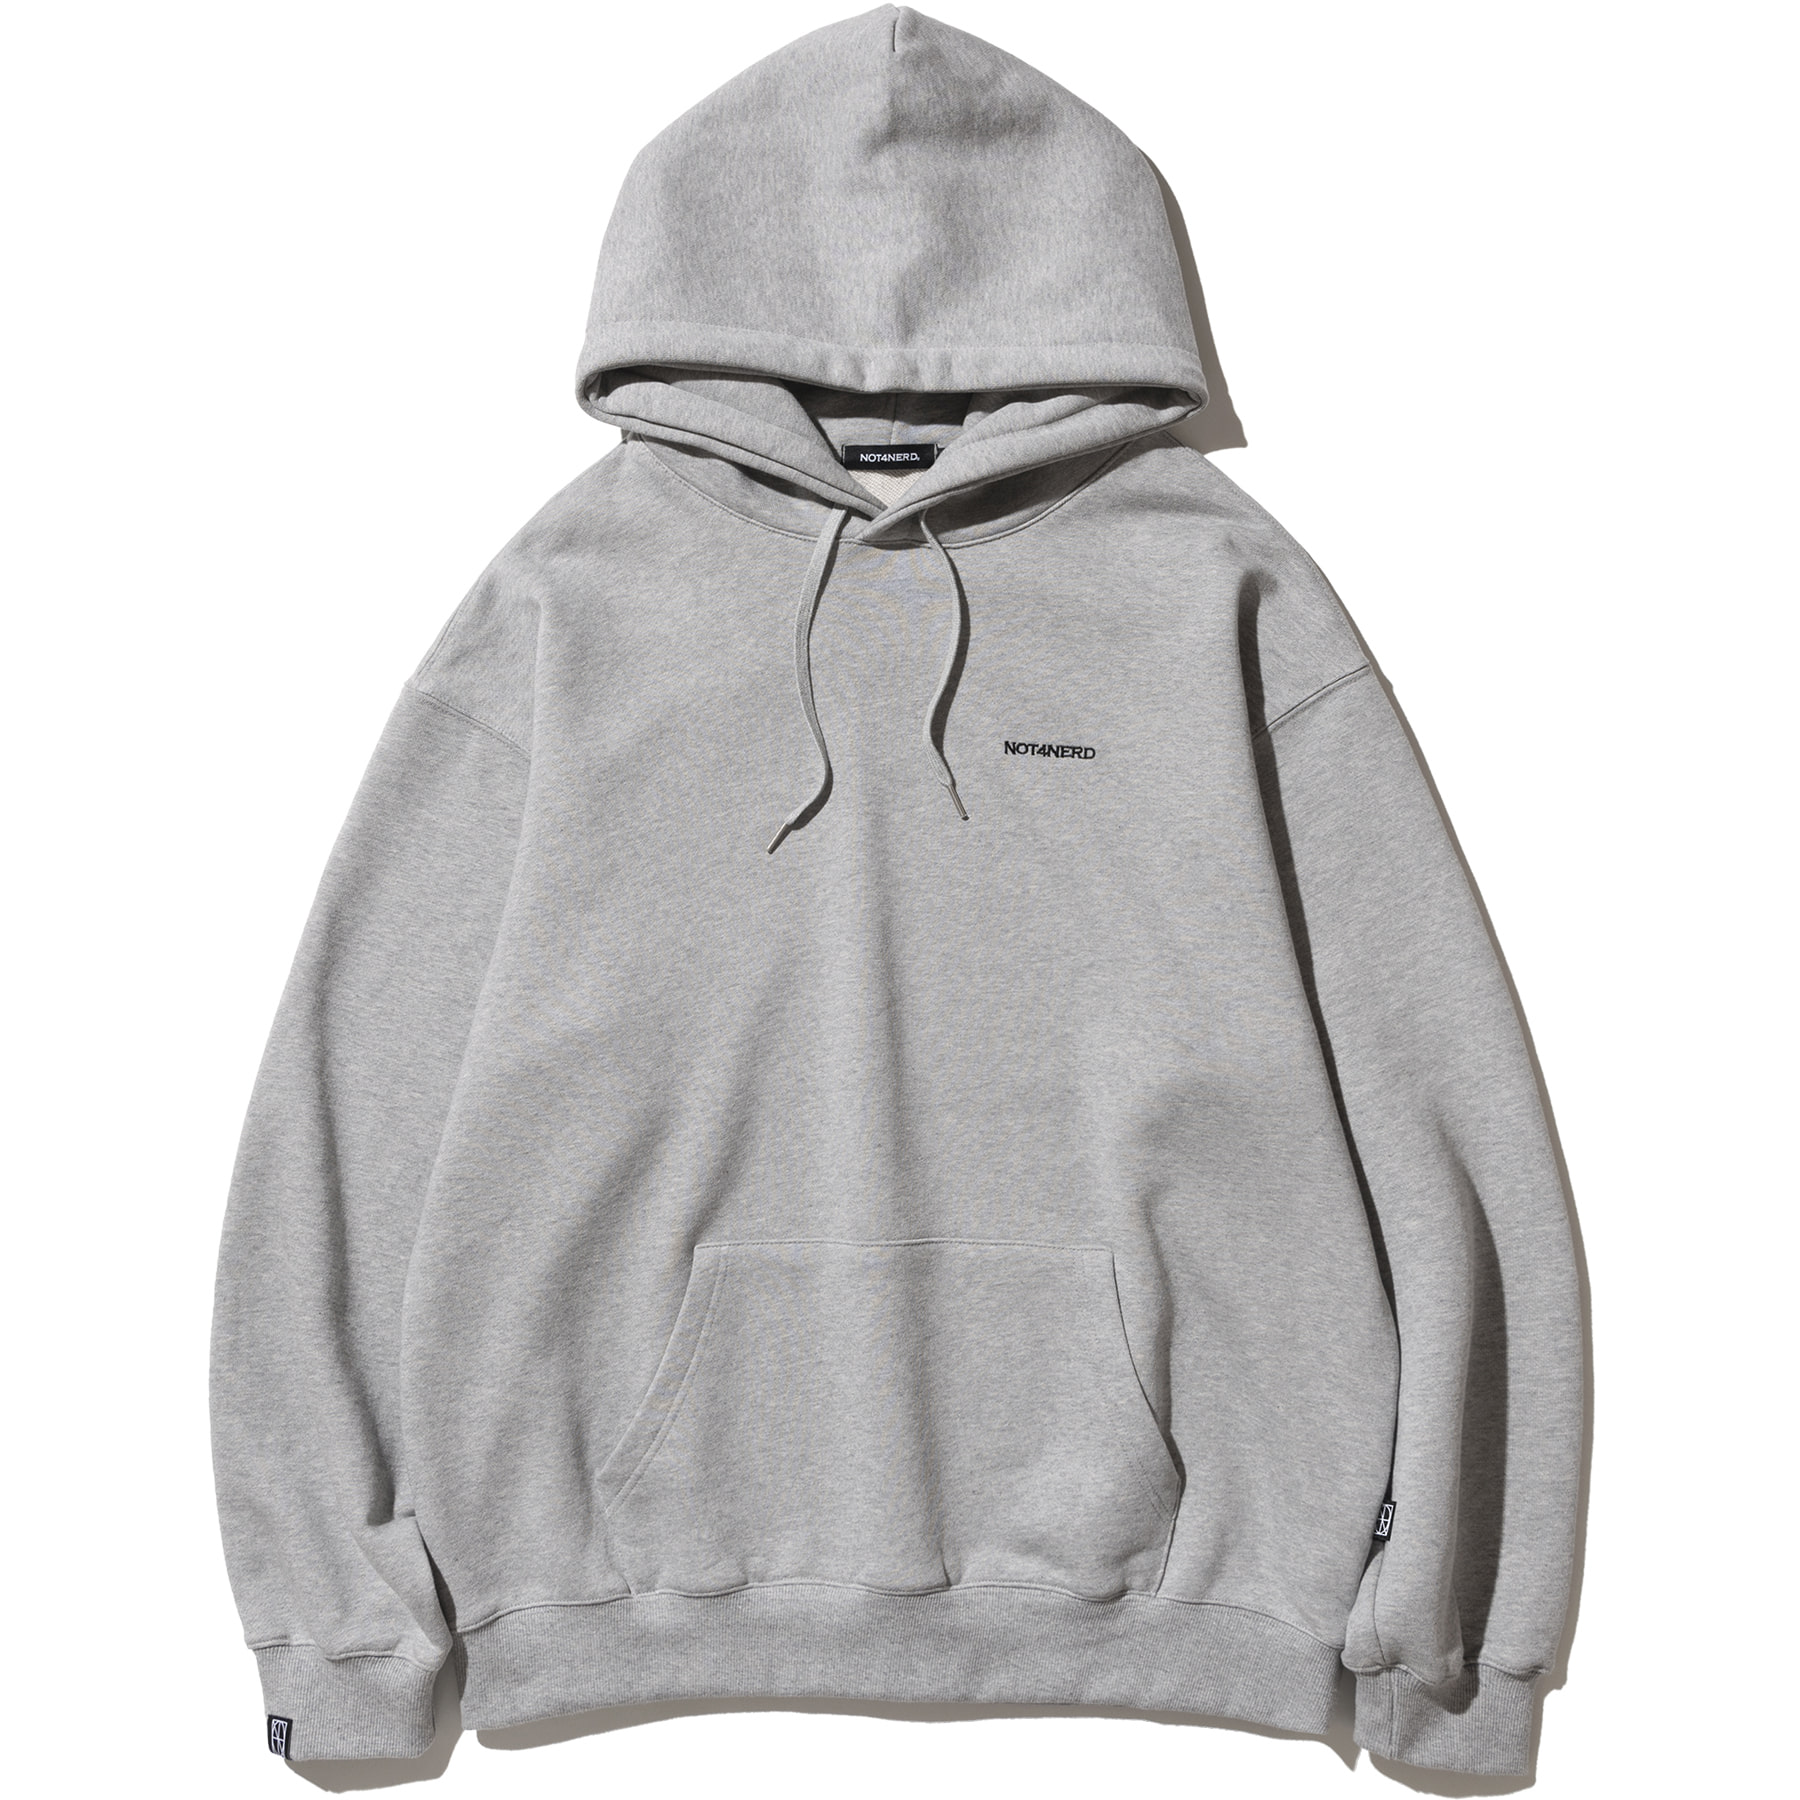 Voluptas Pullover Hood - Grey,NOT4NERD